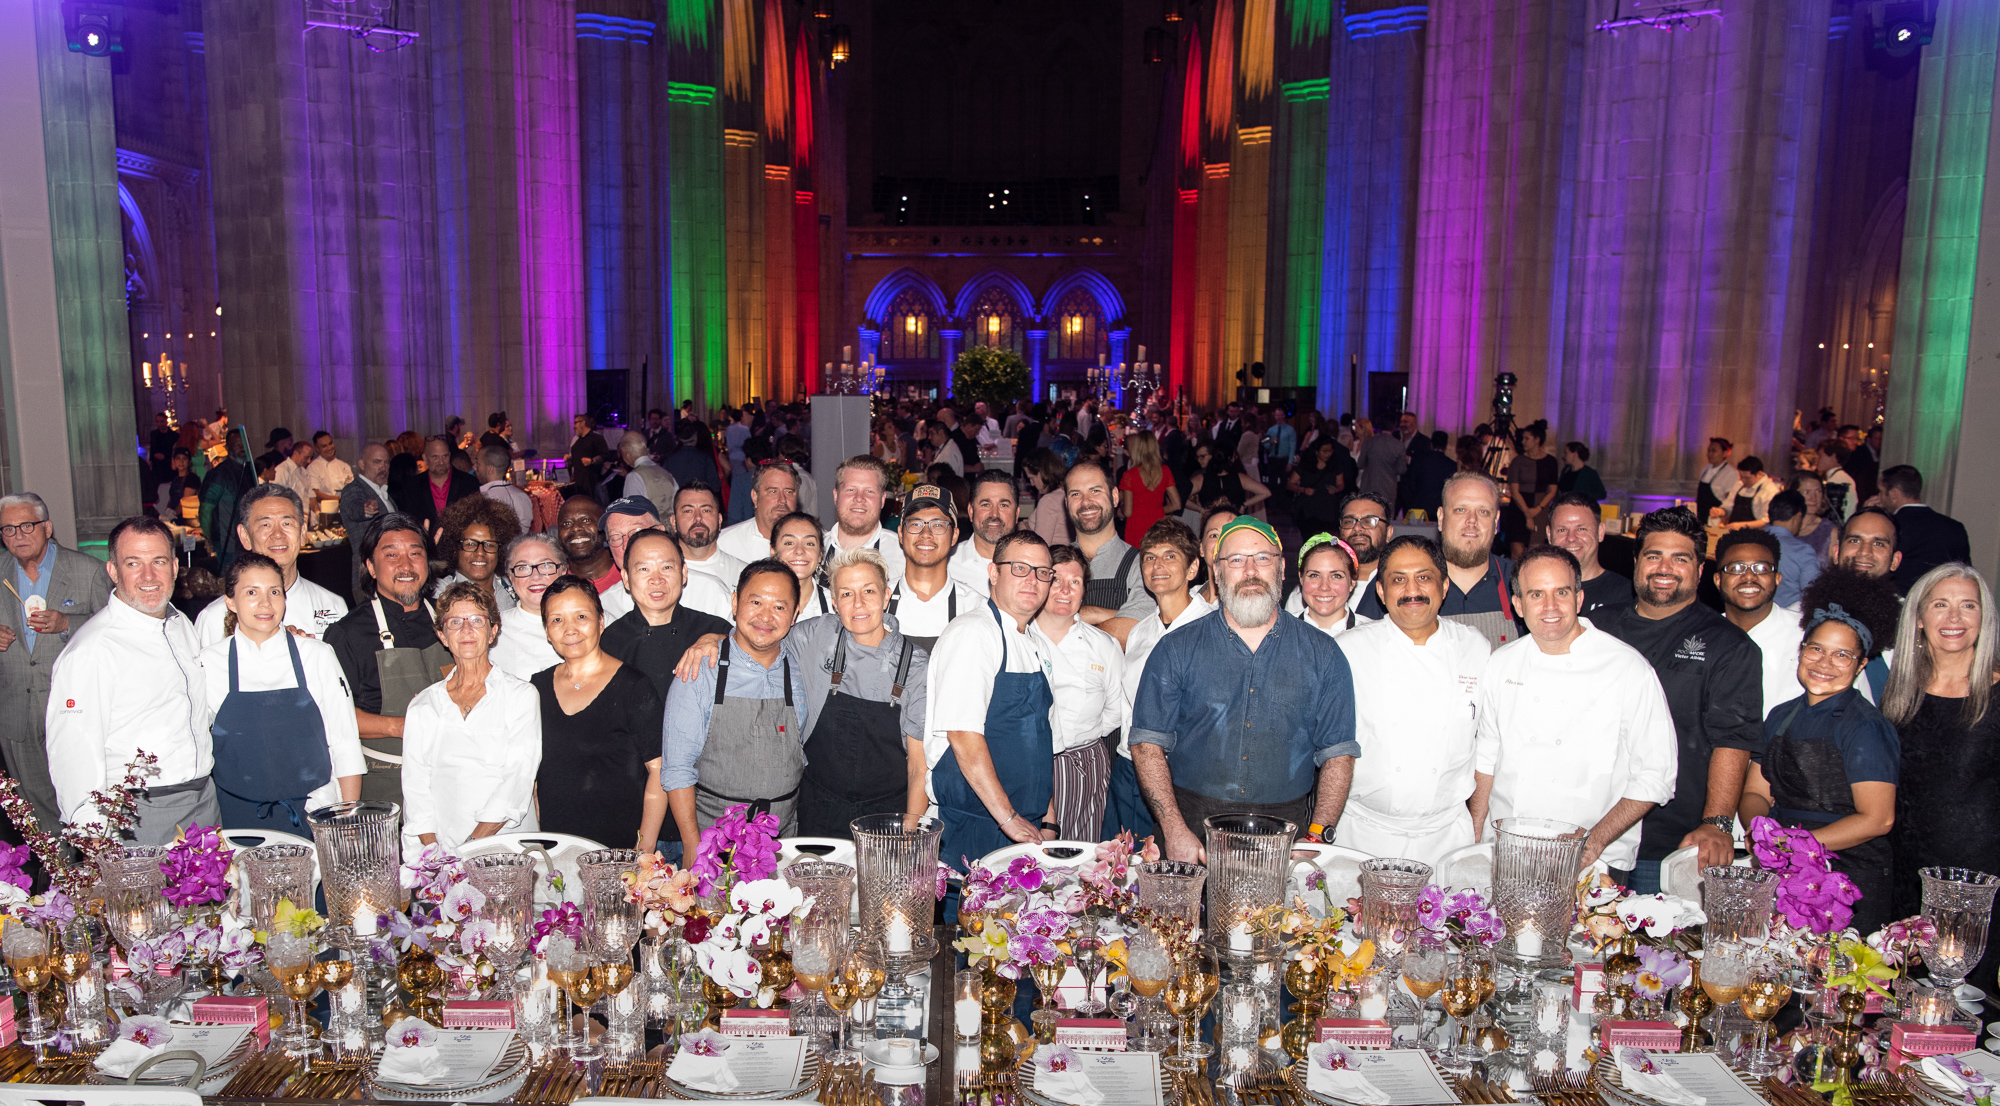 Only a handful of the more than 120 participating chefs and mixologists. (Image:{&amp;nbsp;}Jeff Martin for Human Rights Campaign)<br>